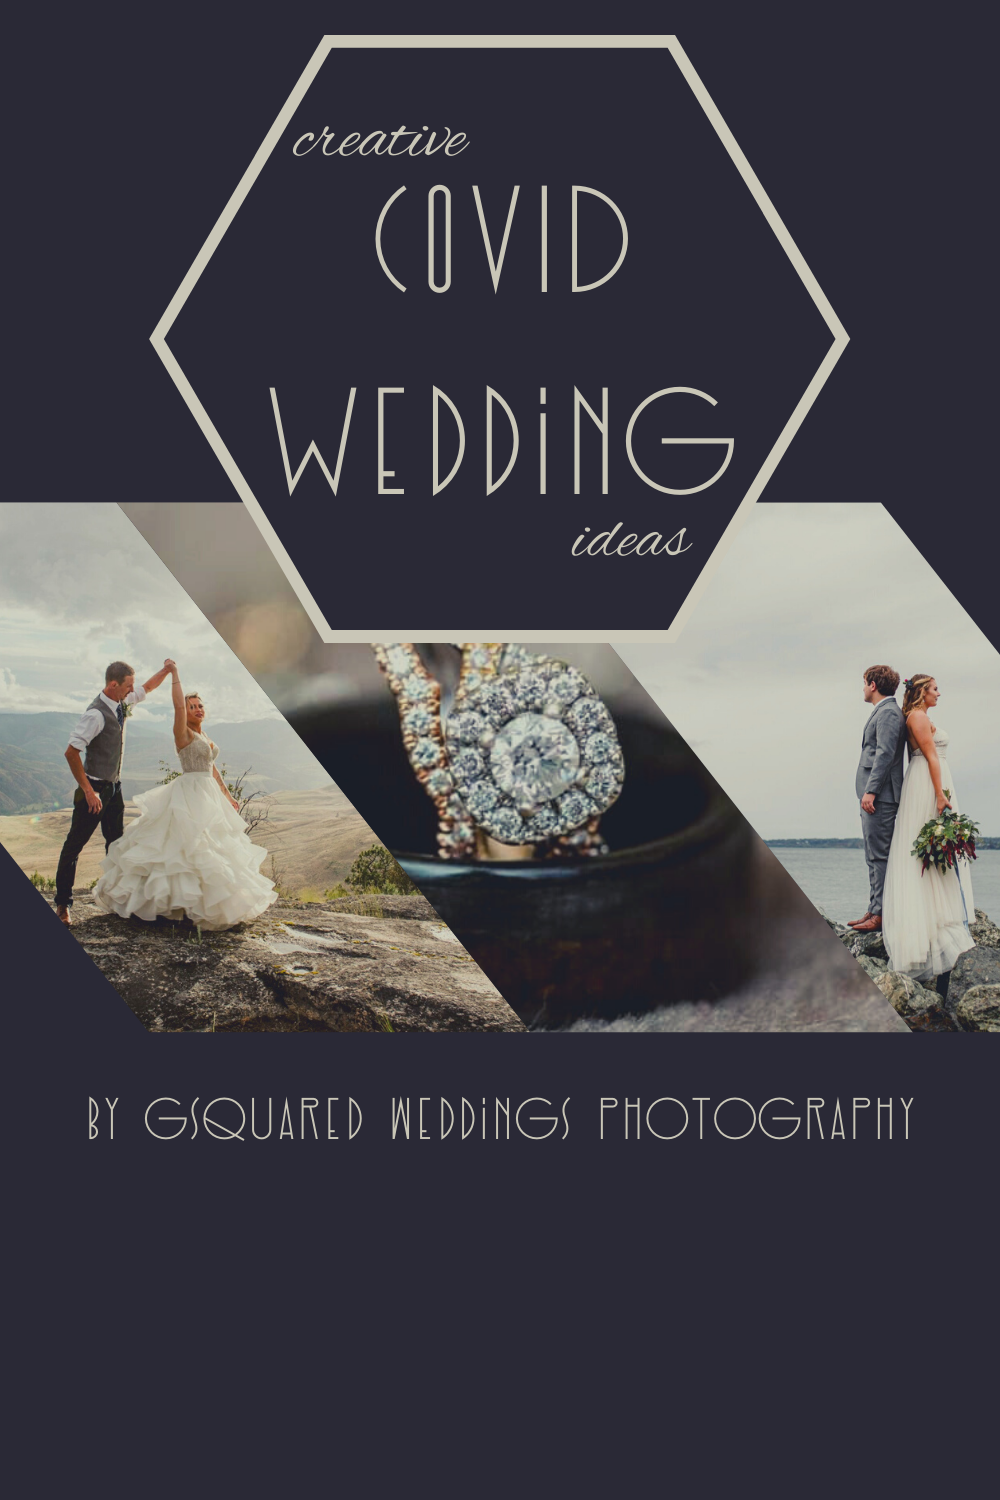 Pin on GSquared Weddings & Engagements